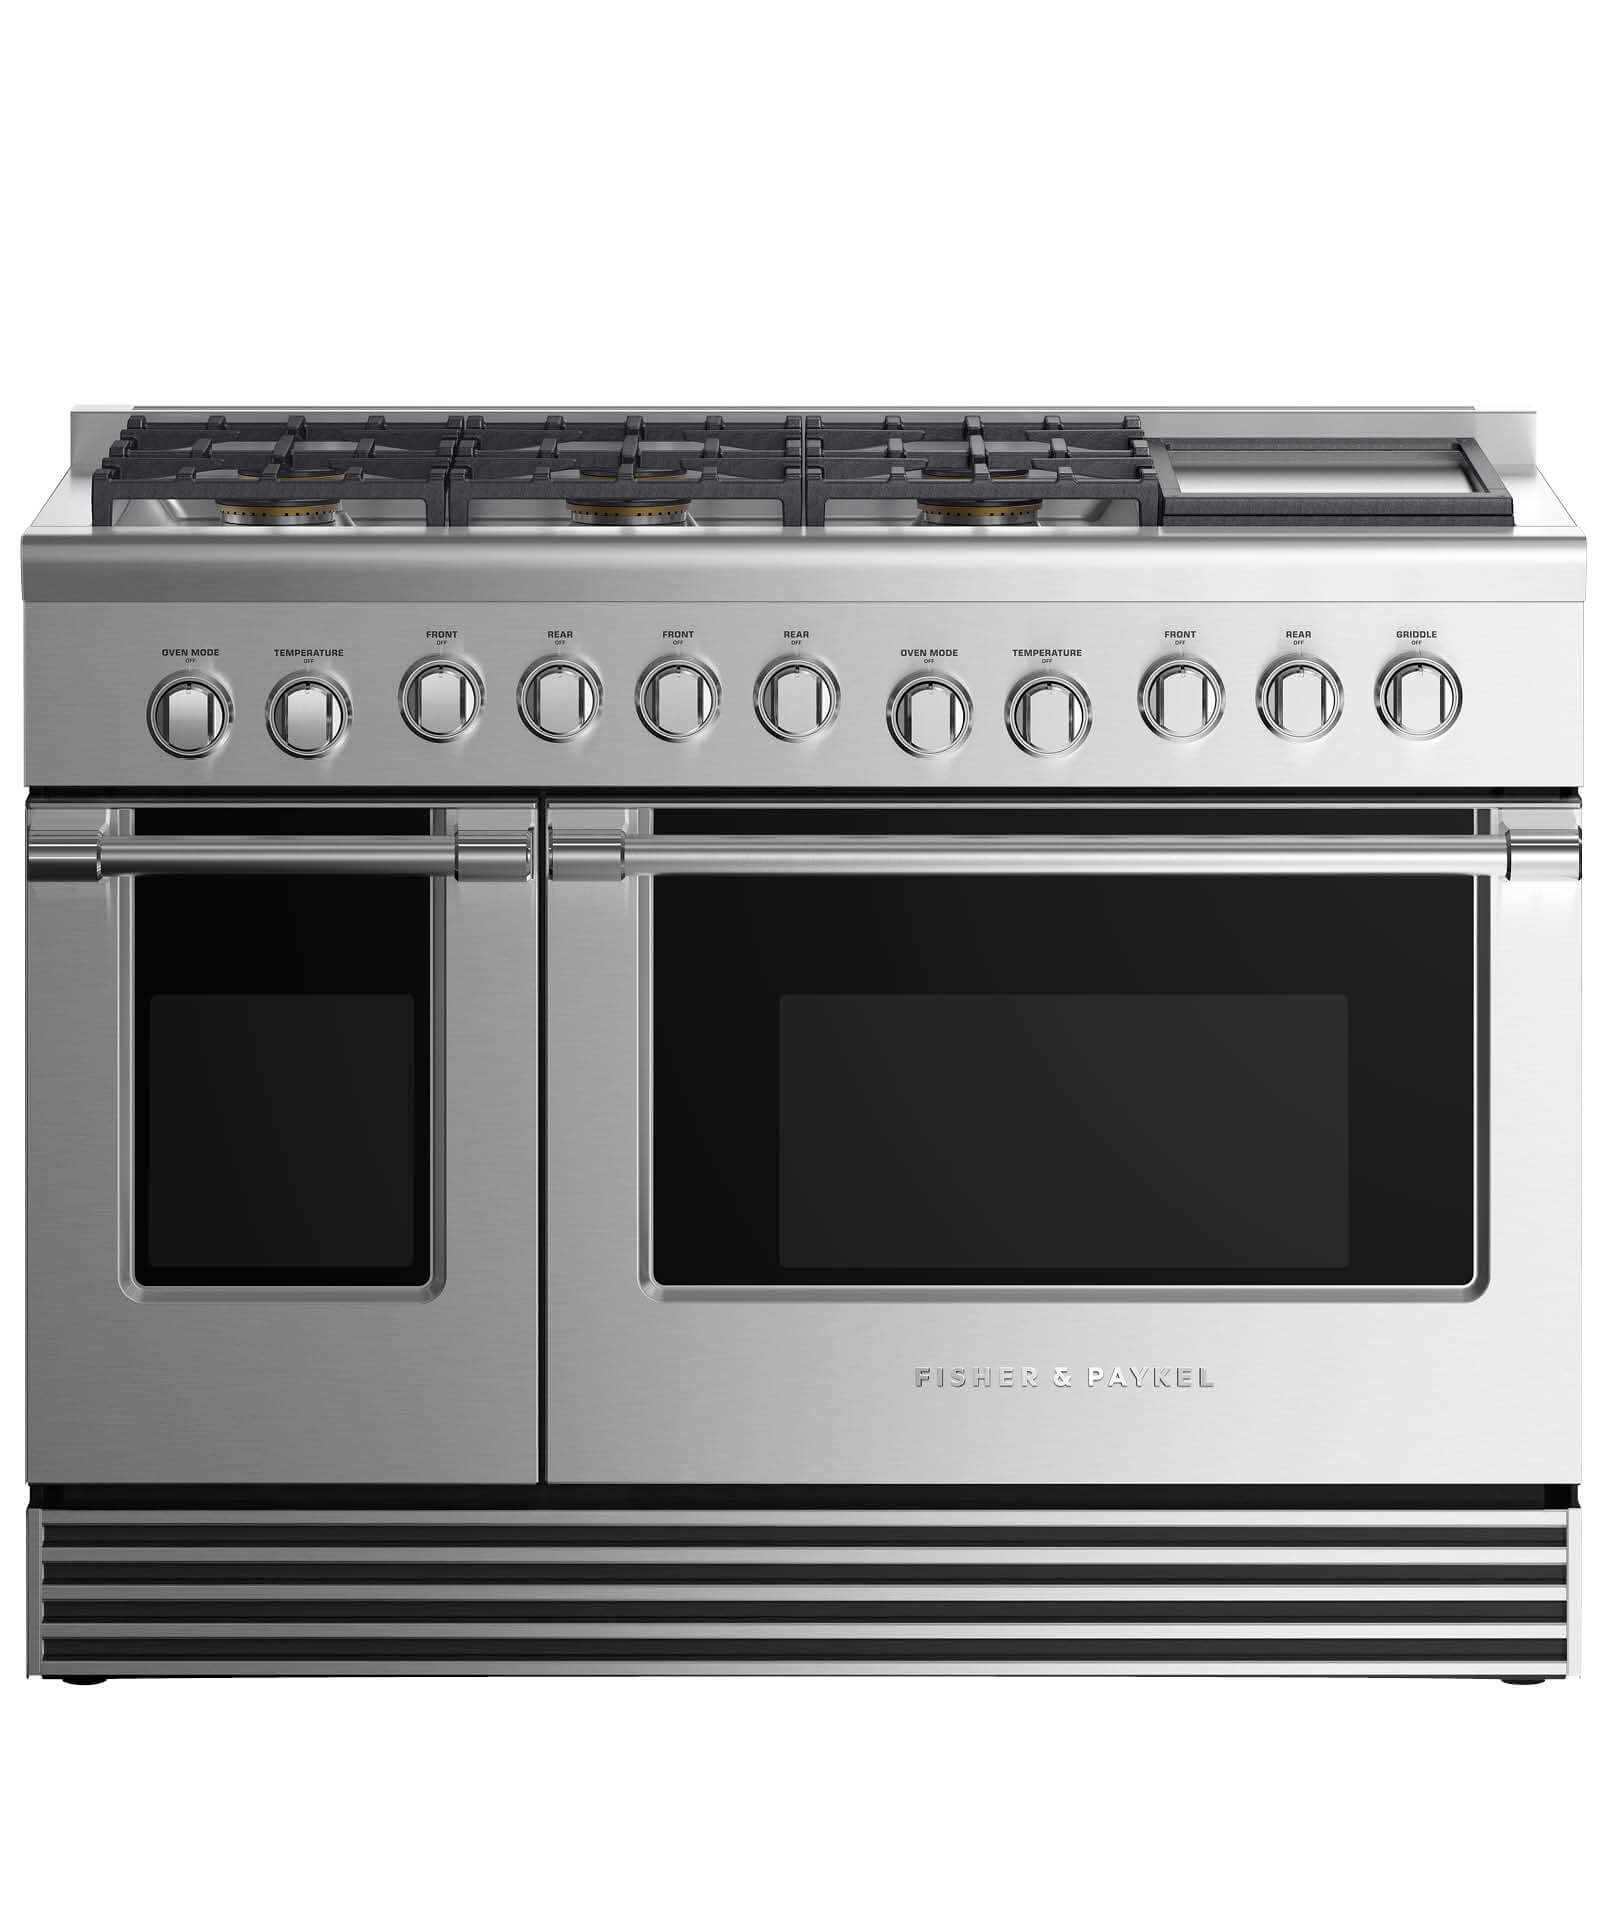 "Fisher and Paykel Gas Range 48"", 6 Burners with Griddle"